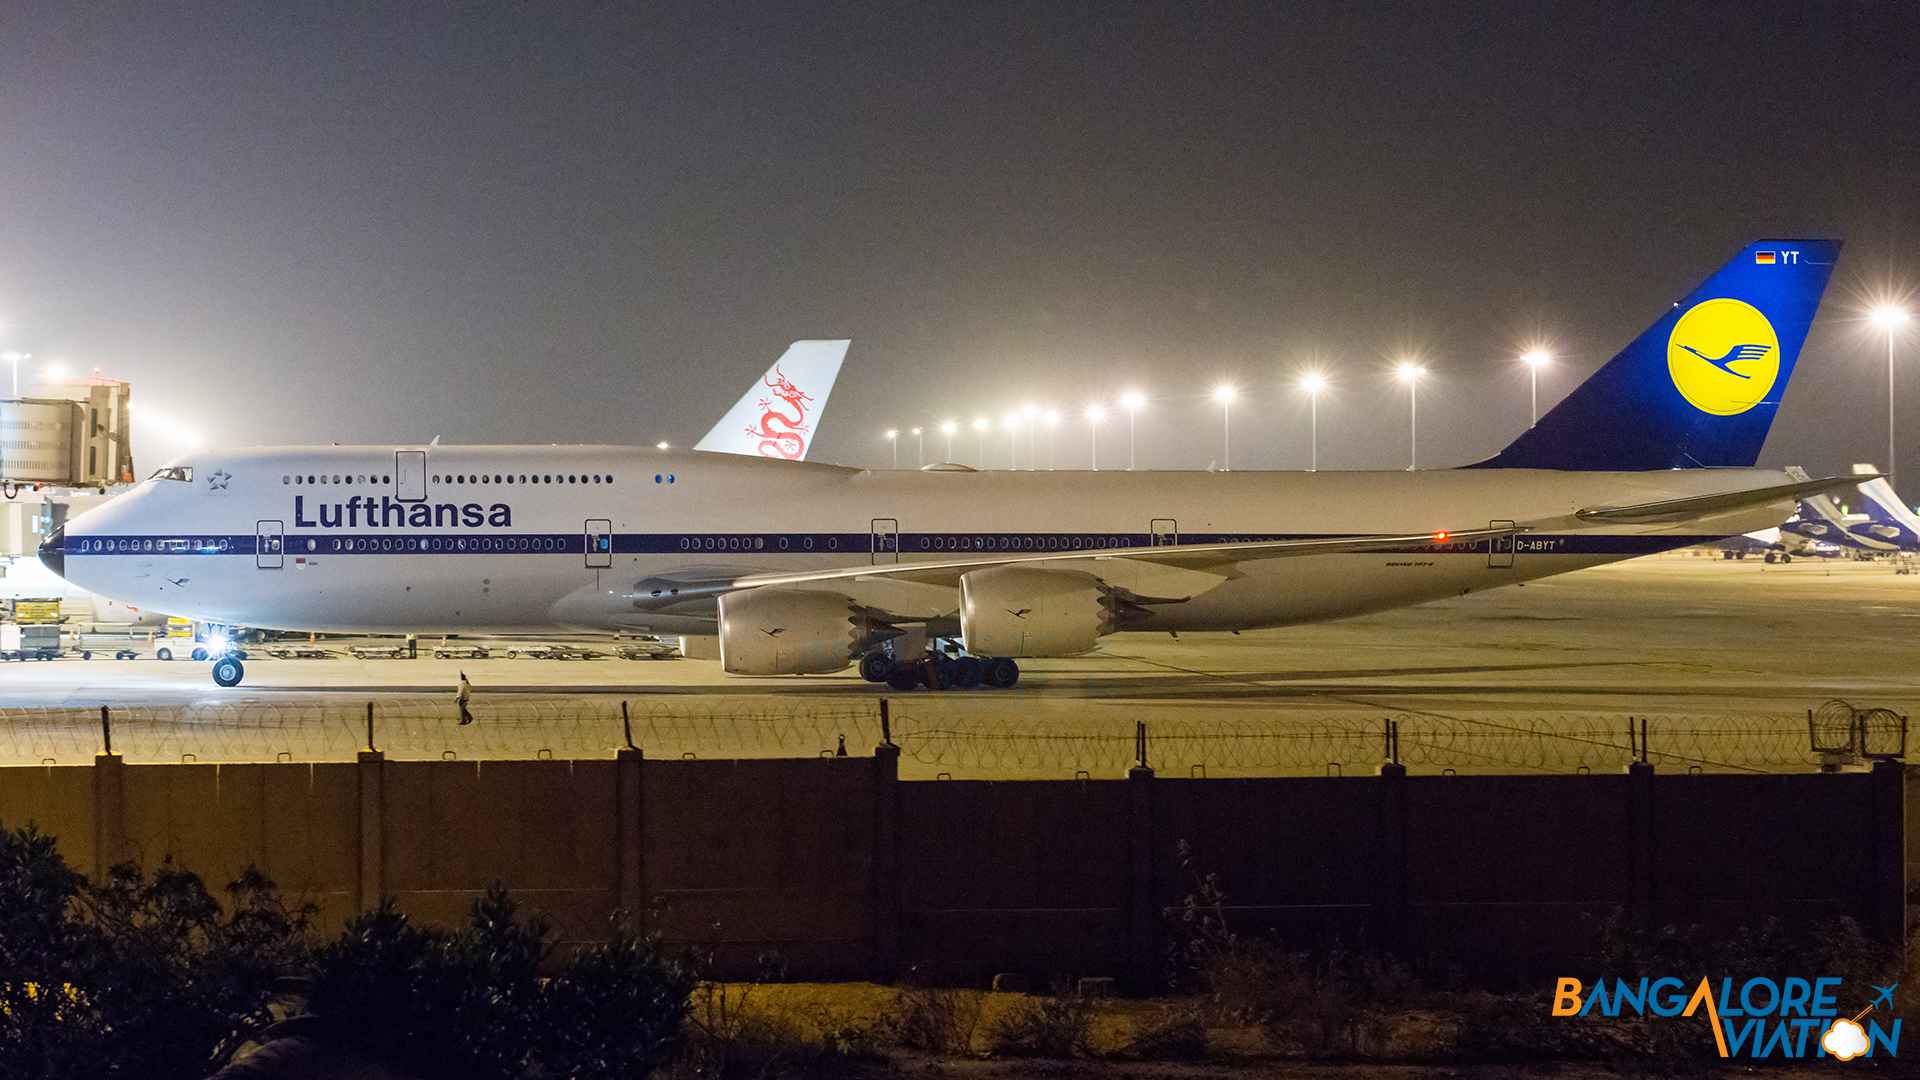 biggest 747 with Lufthansa Upgrades Mumbai Frankfurt Flight Boeing 747 8i on Albany International Airport as well Editorial Photo Lufthansa Airplanes Frankfurt Airport Germany September Airbus Boeing Aircraft Fra German Flag Carrier Image46045106 also Hawaii moreover Watch also Boeing Tour.